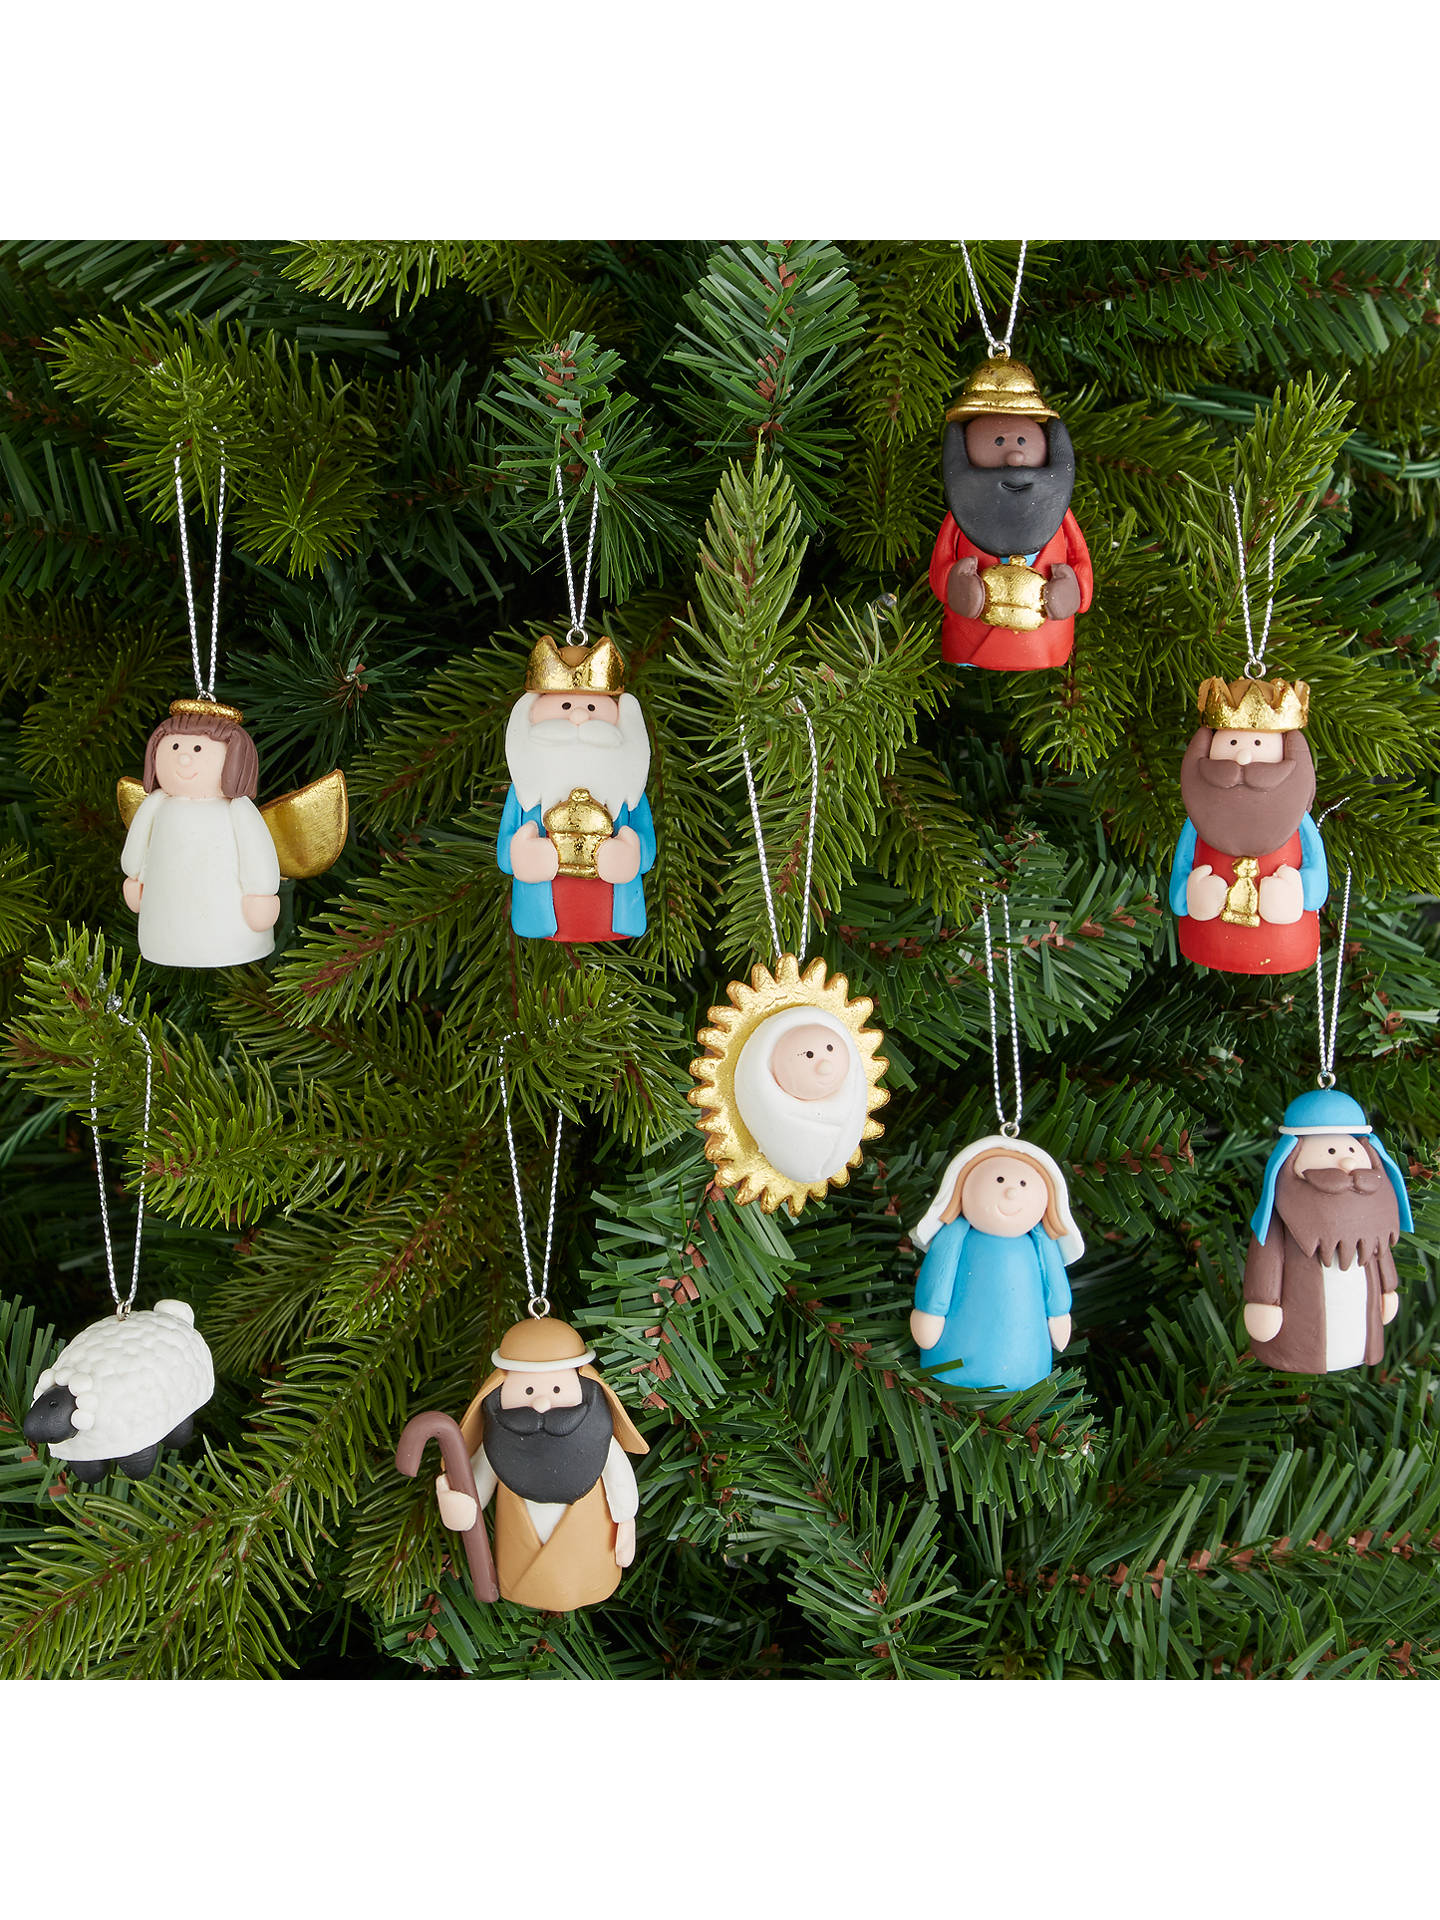 John Lewis Christmas Tree Themes.John Lewis Claydough Nativity Tree Decoration Set At John